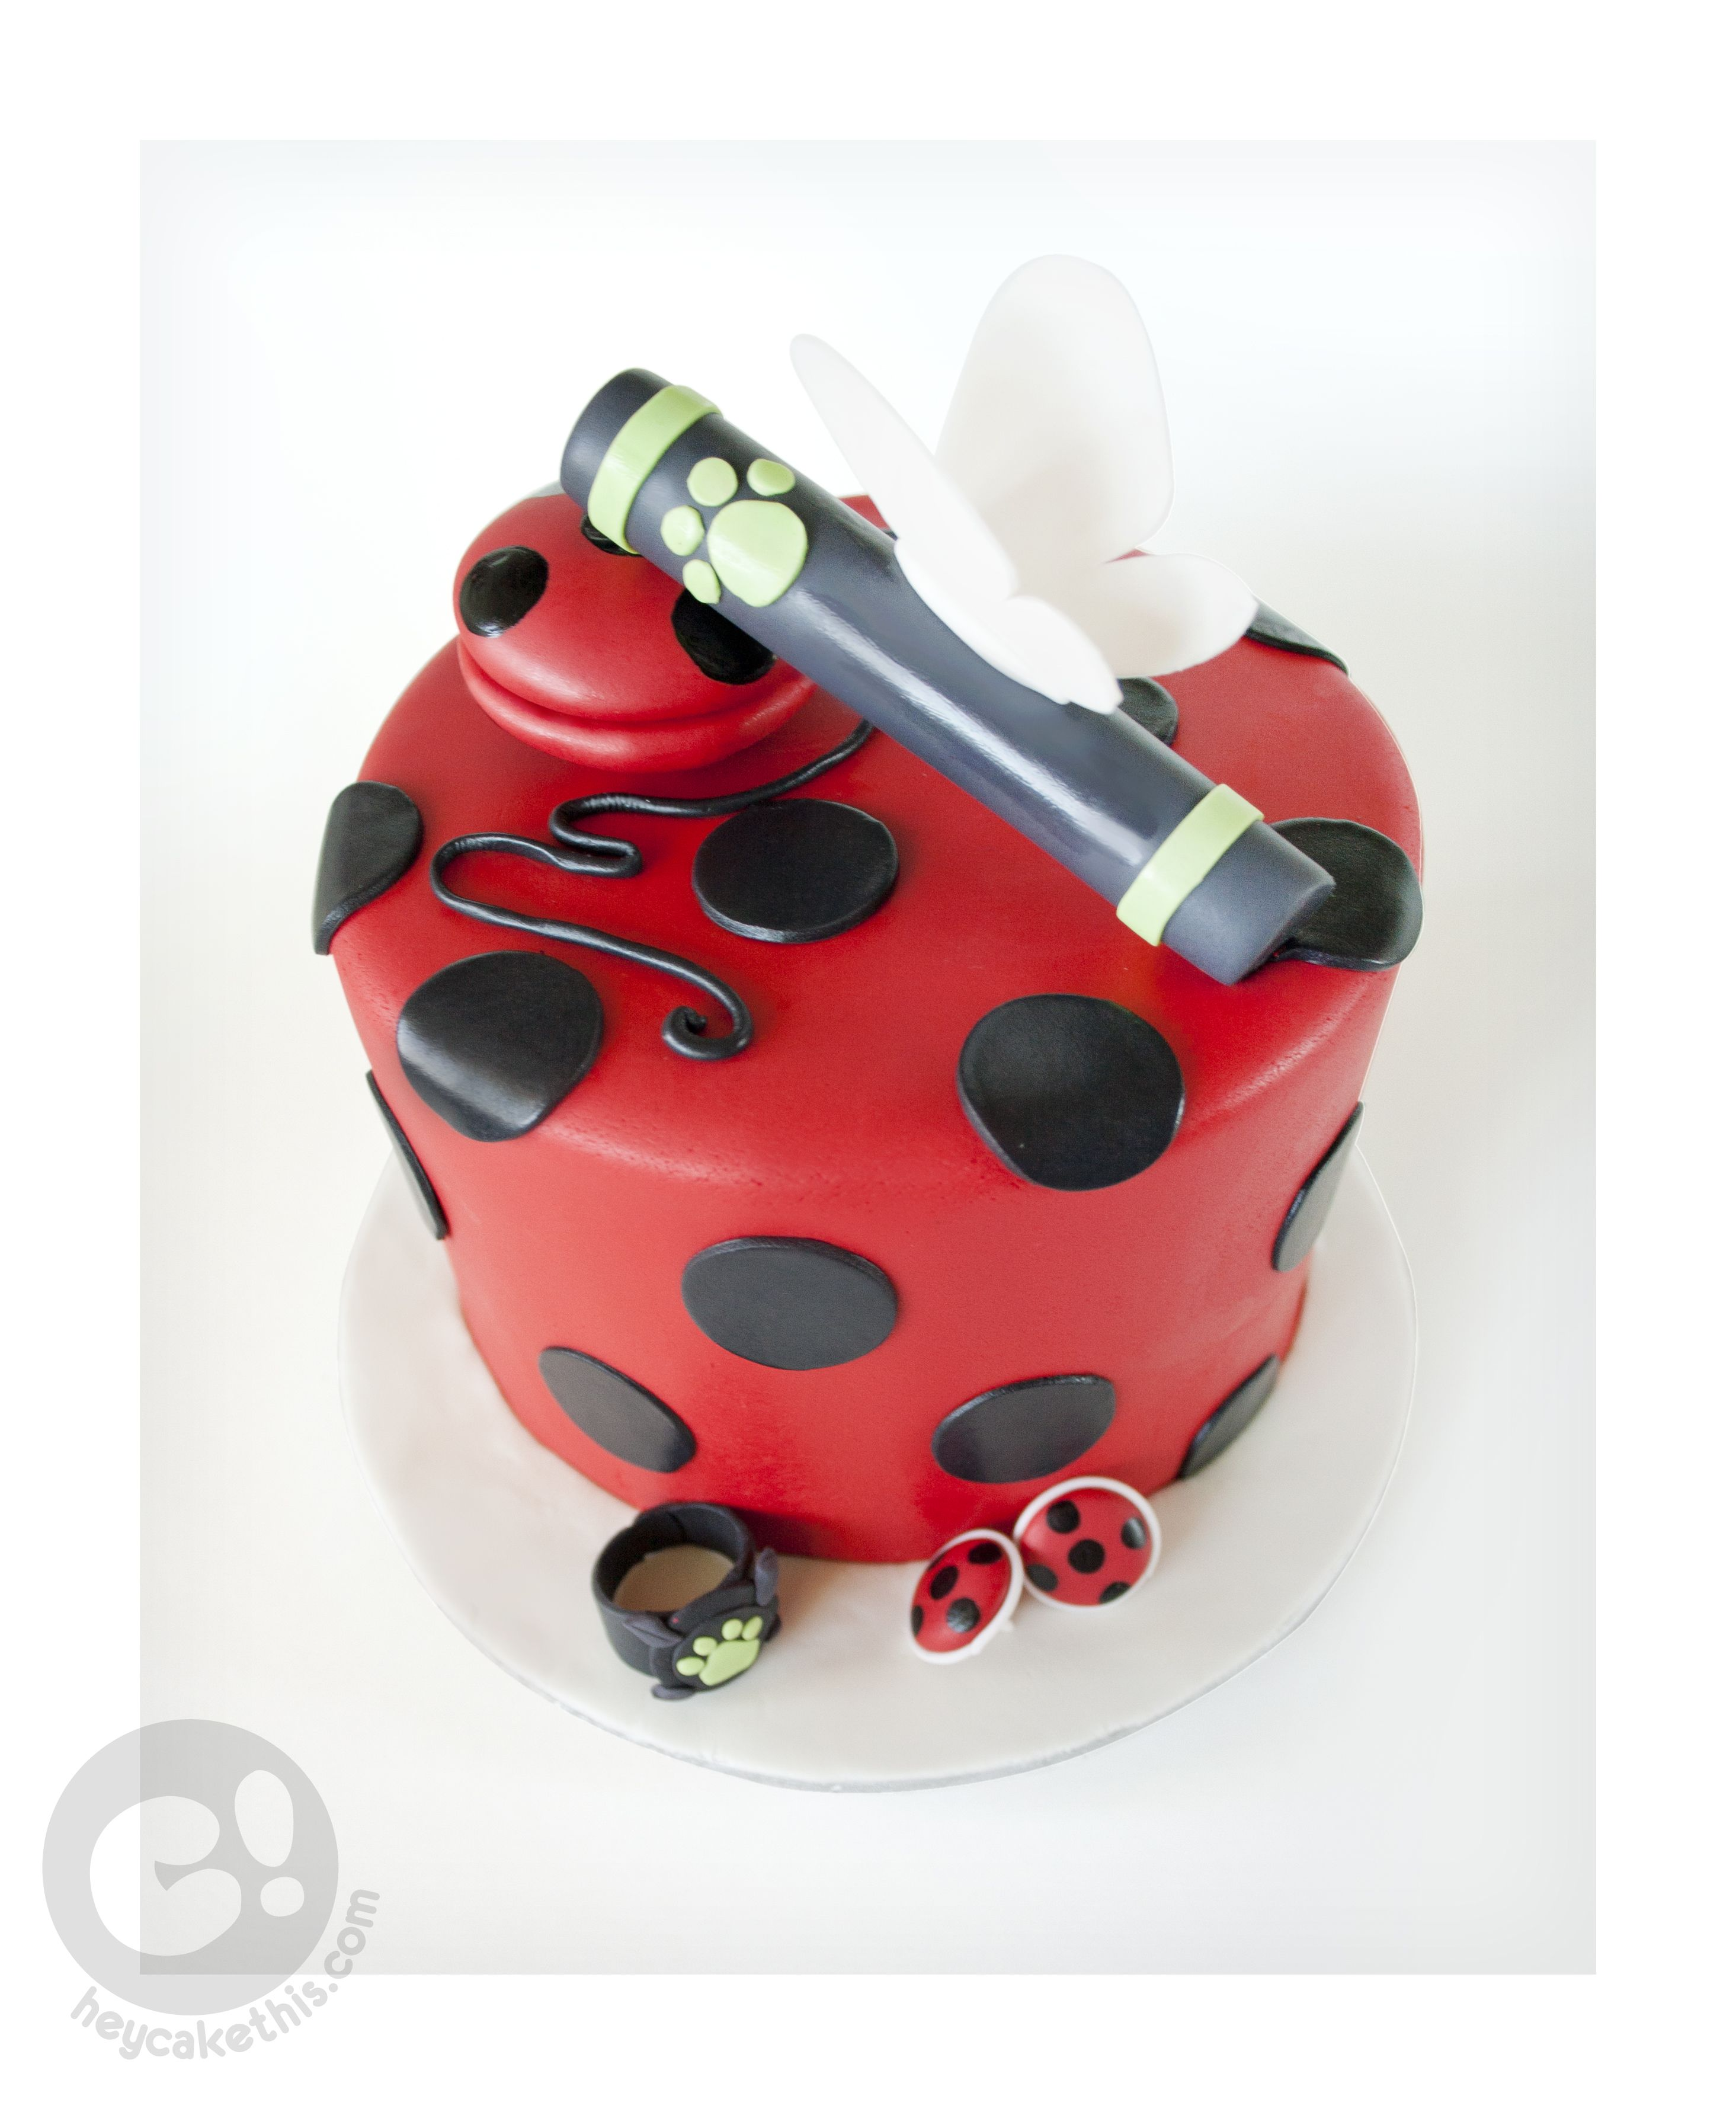 A cake themed after the cartoon Miraculous Ladybug and Cat Noir